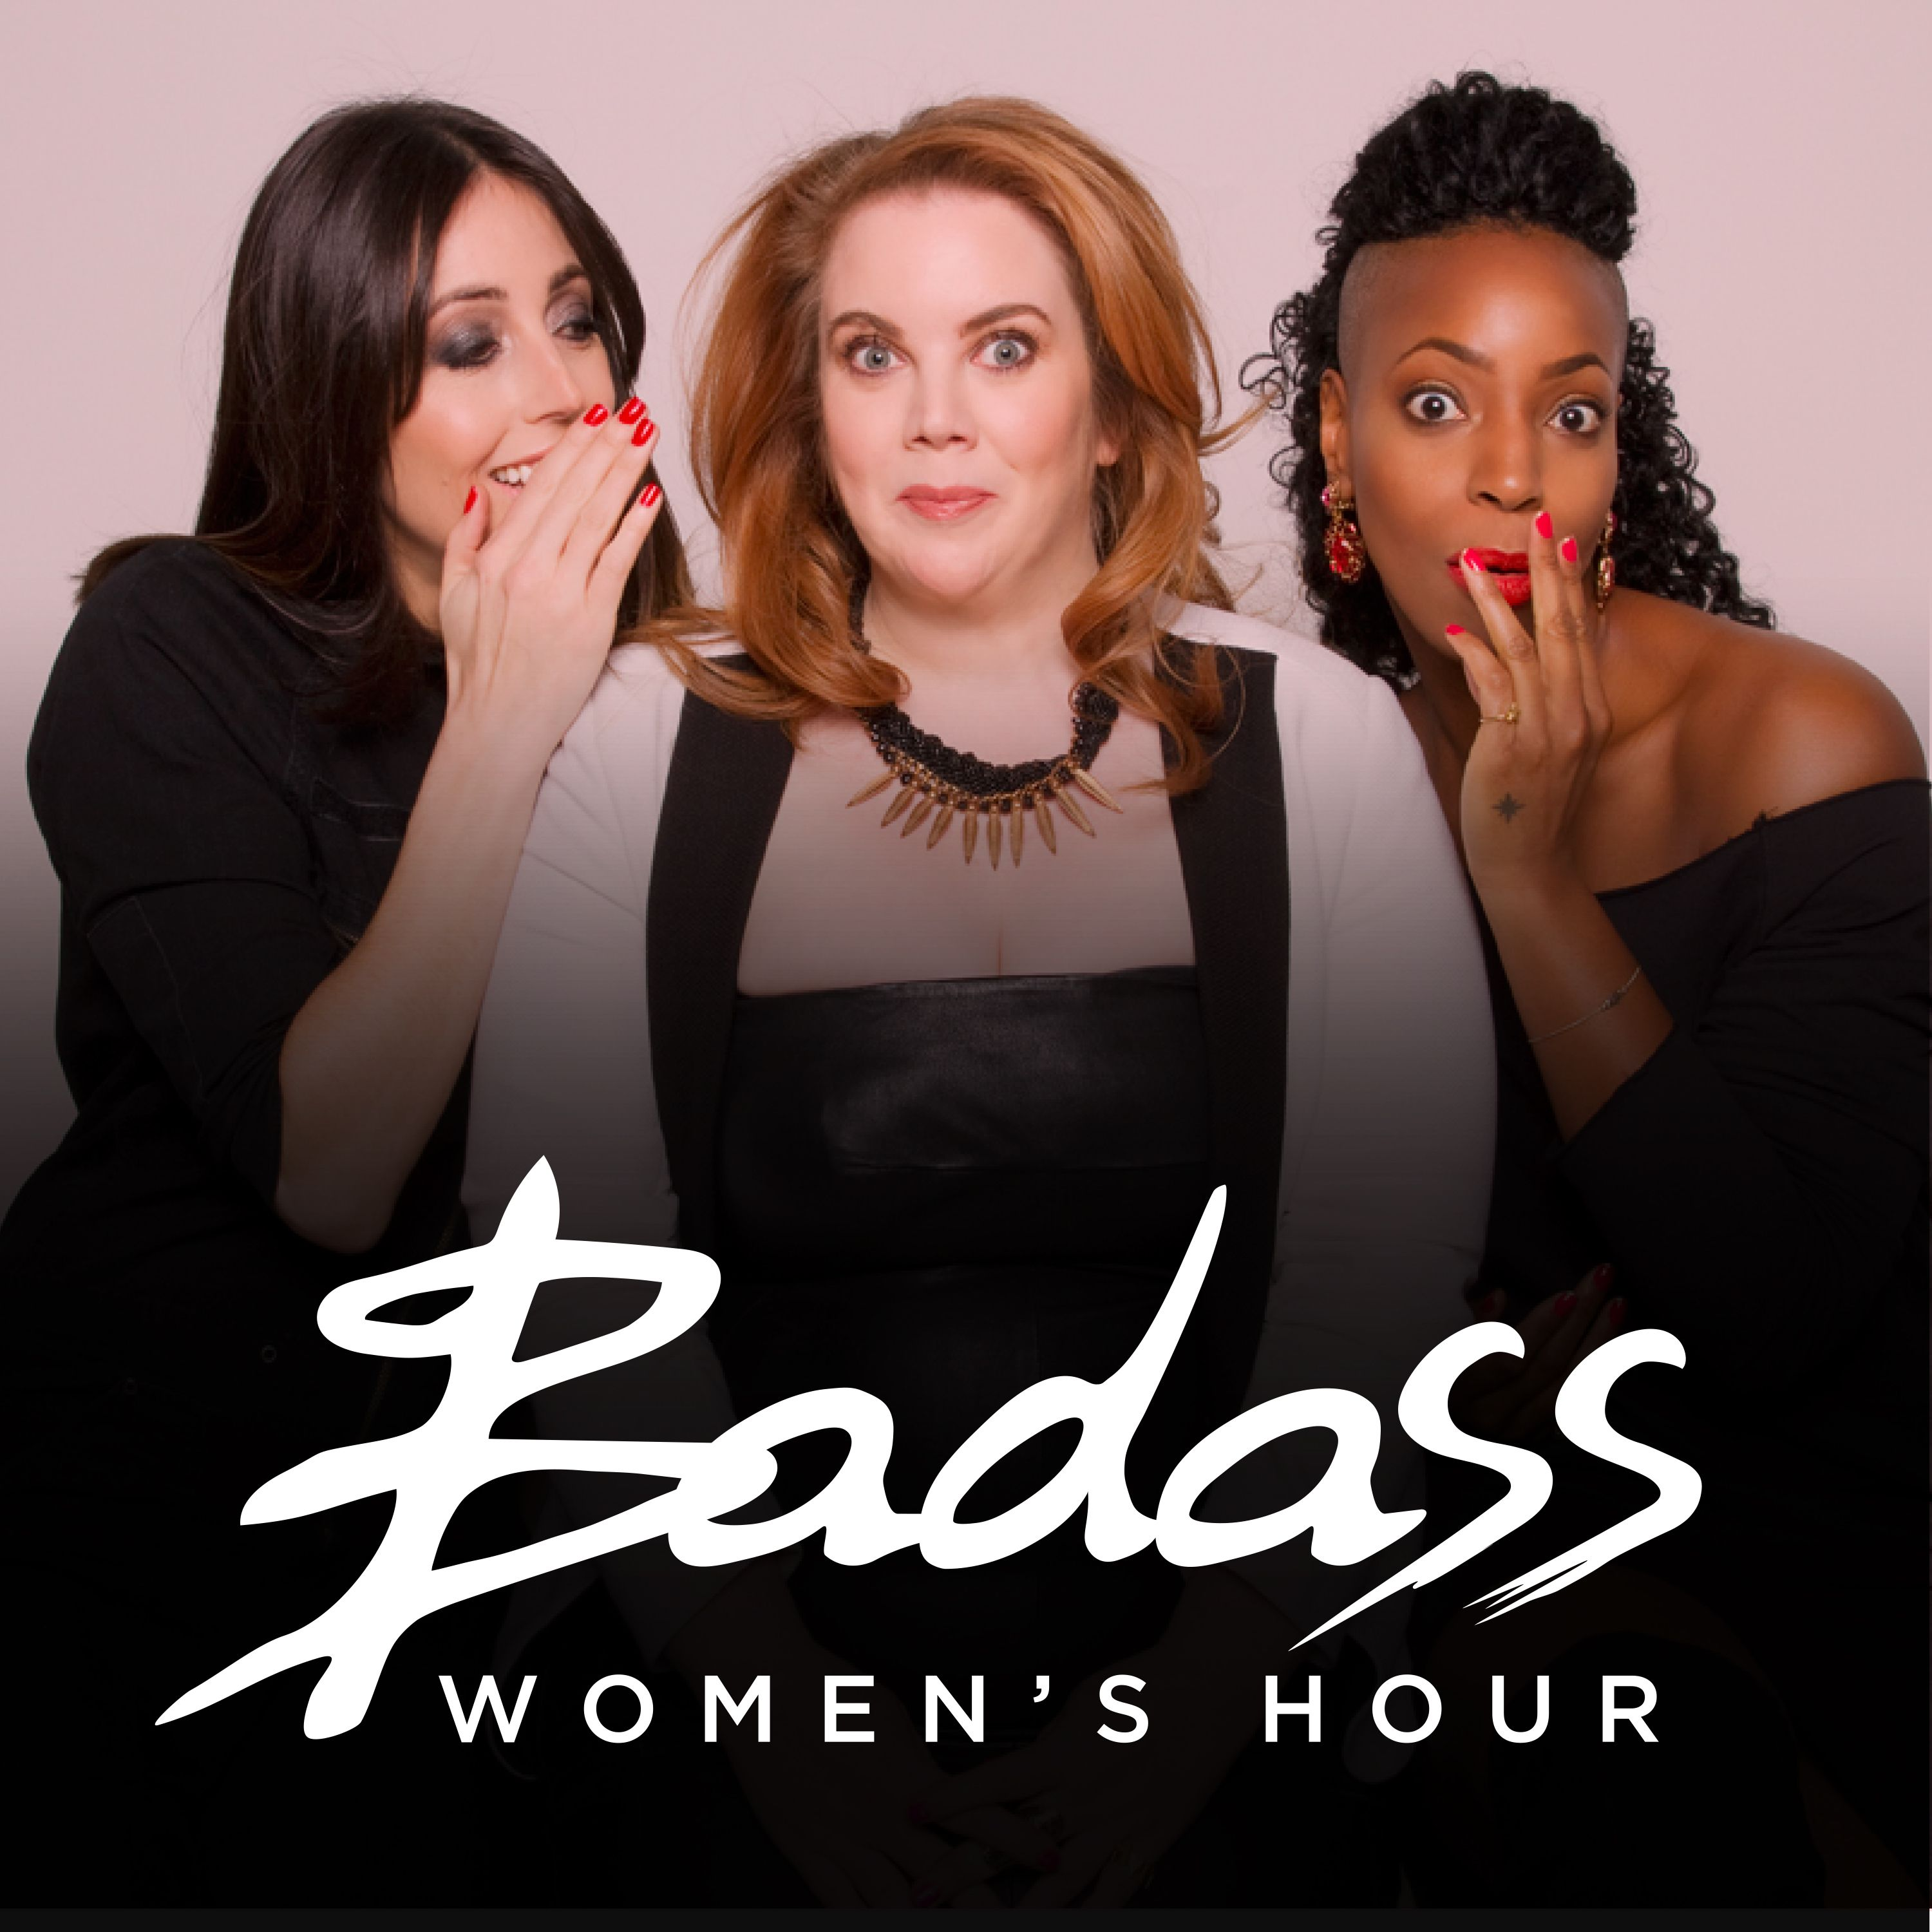 Ep 223, Debating The Best A Man Can Be, And The Fear Surrounding Autism  With Kacey Ainsworth. Badass Women's Hour podcast